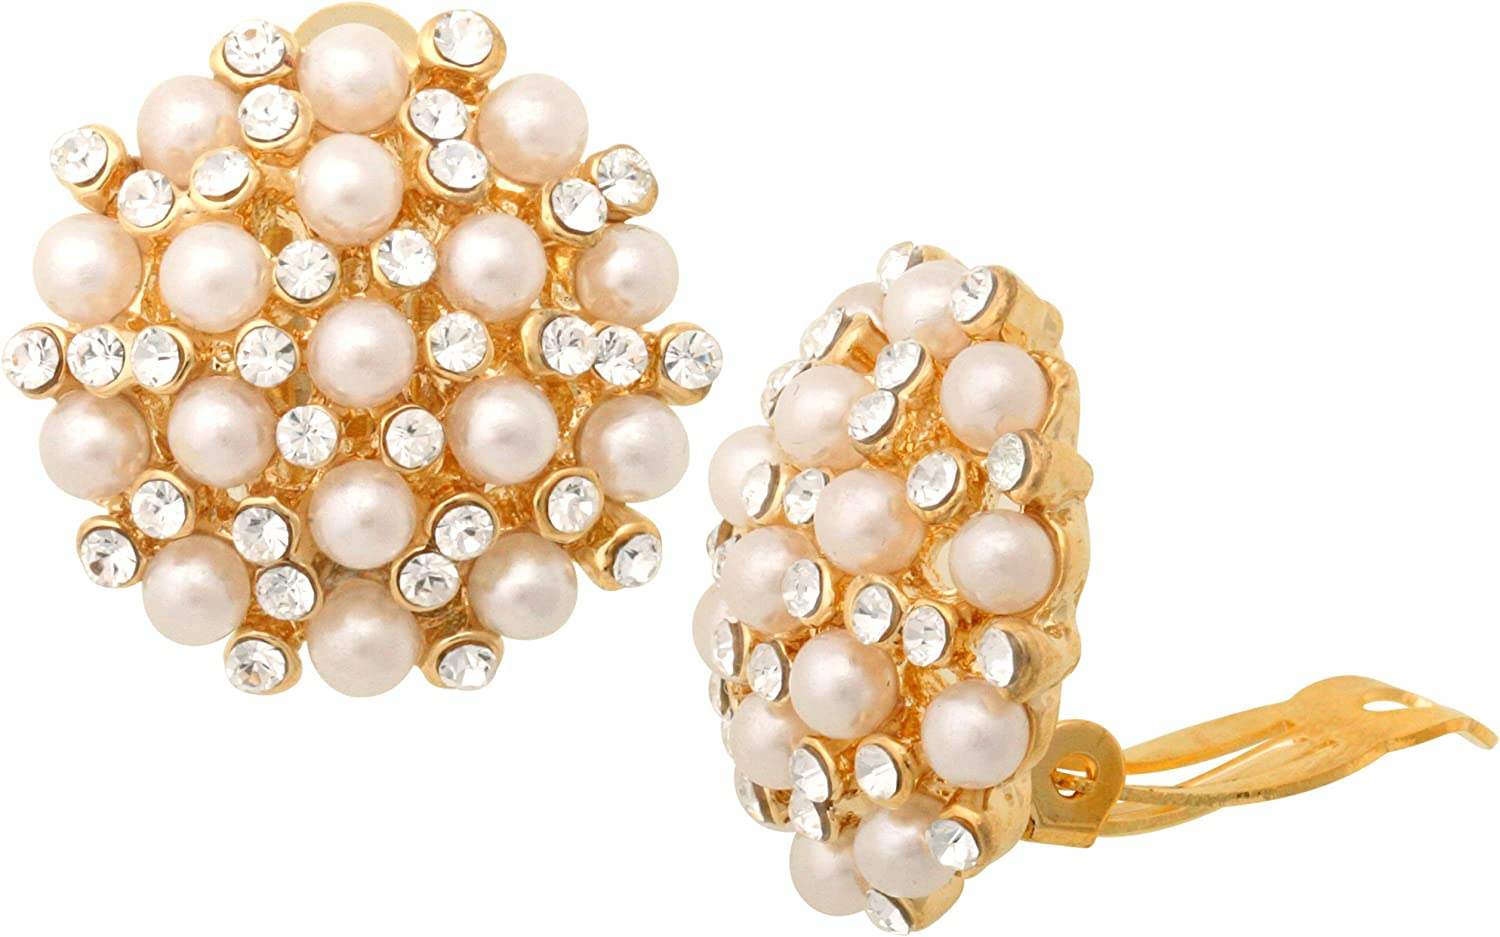 JanKuo Jewelry Gold Plated Vintage Style Simulated Pearls with Crystal Stones Clip On Earrings